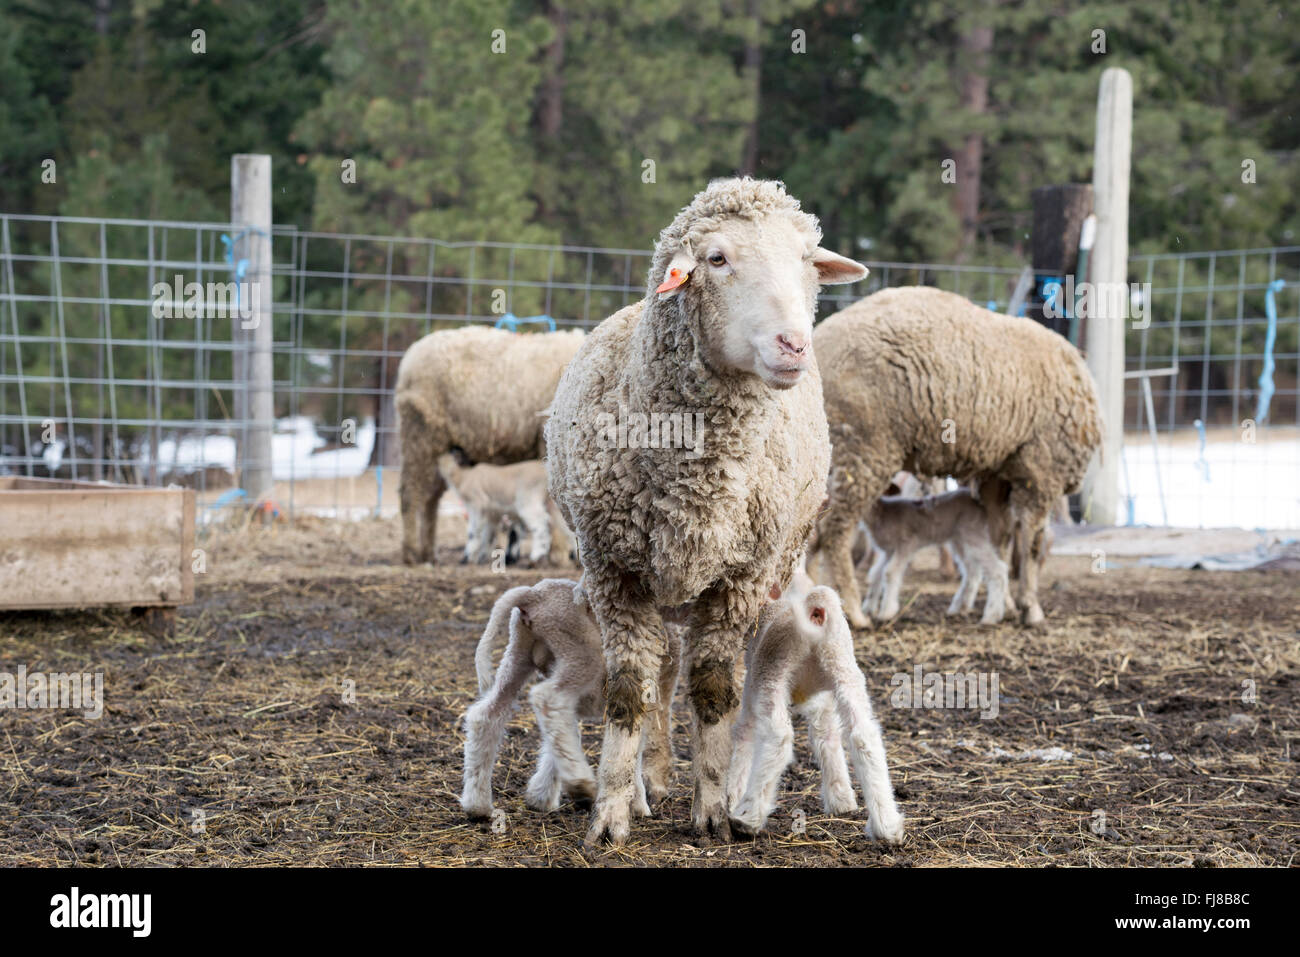 Lambs nursing from it's mother on a farm in Northeast Oregon. - Stock Image